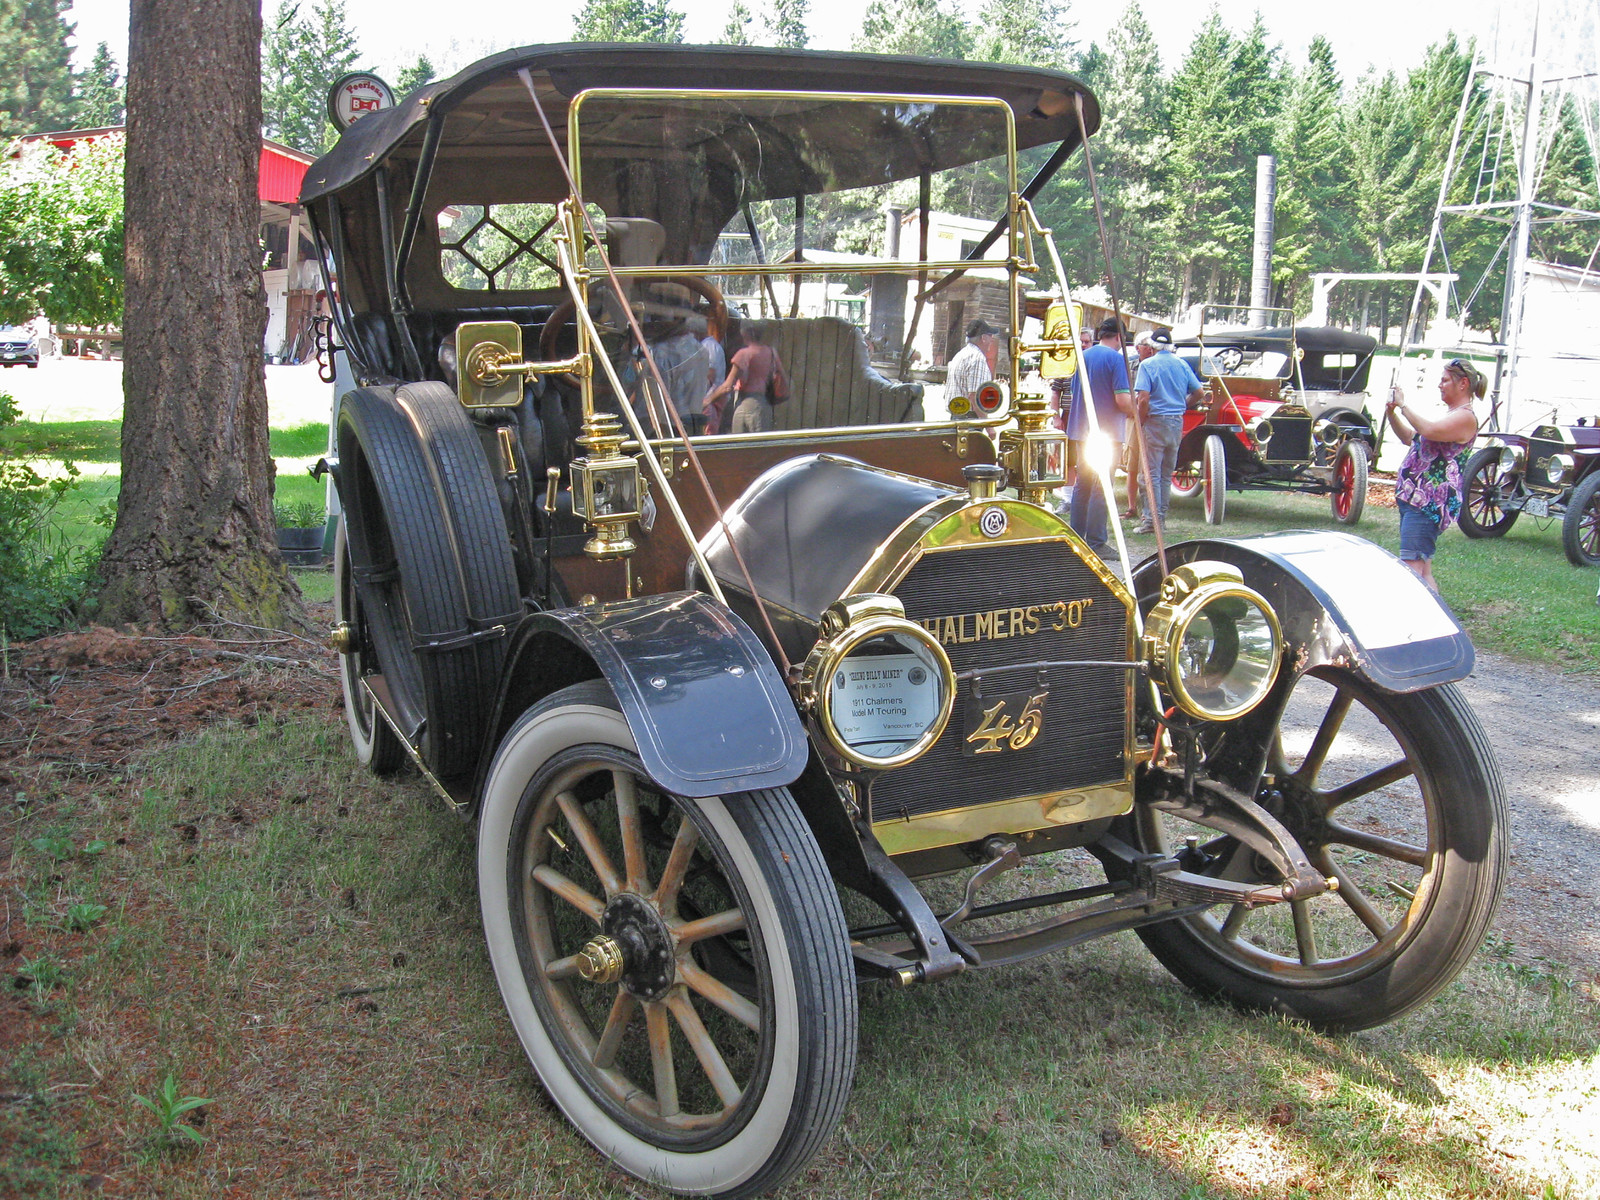 1910 Chalmers 30 touring